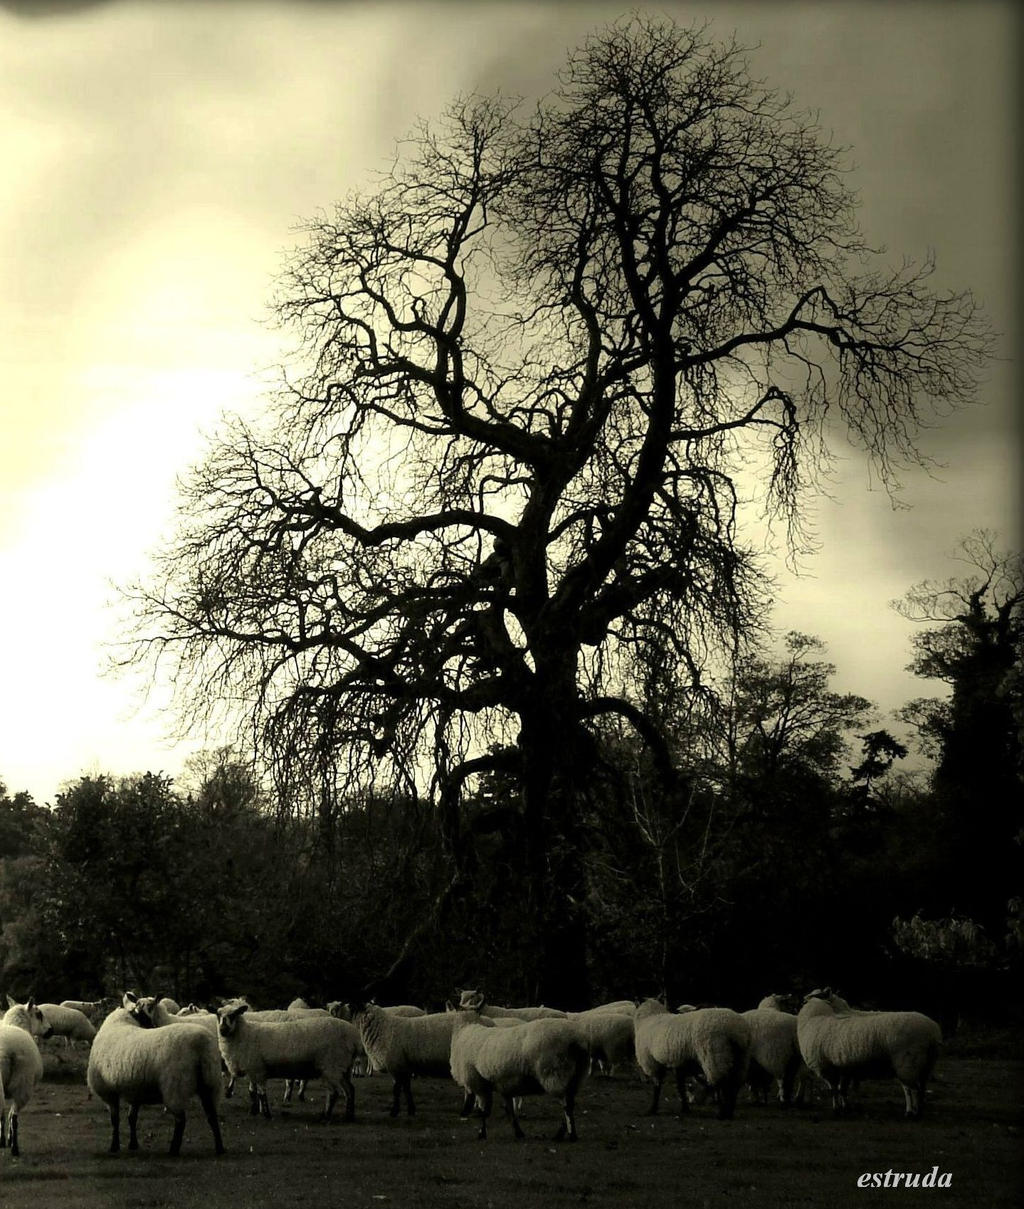 Sheep by Estruda